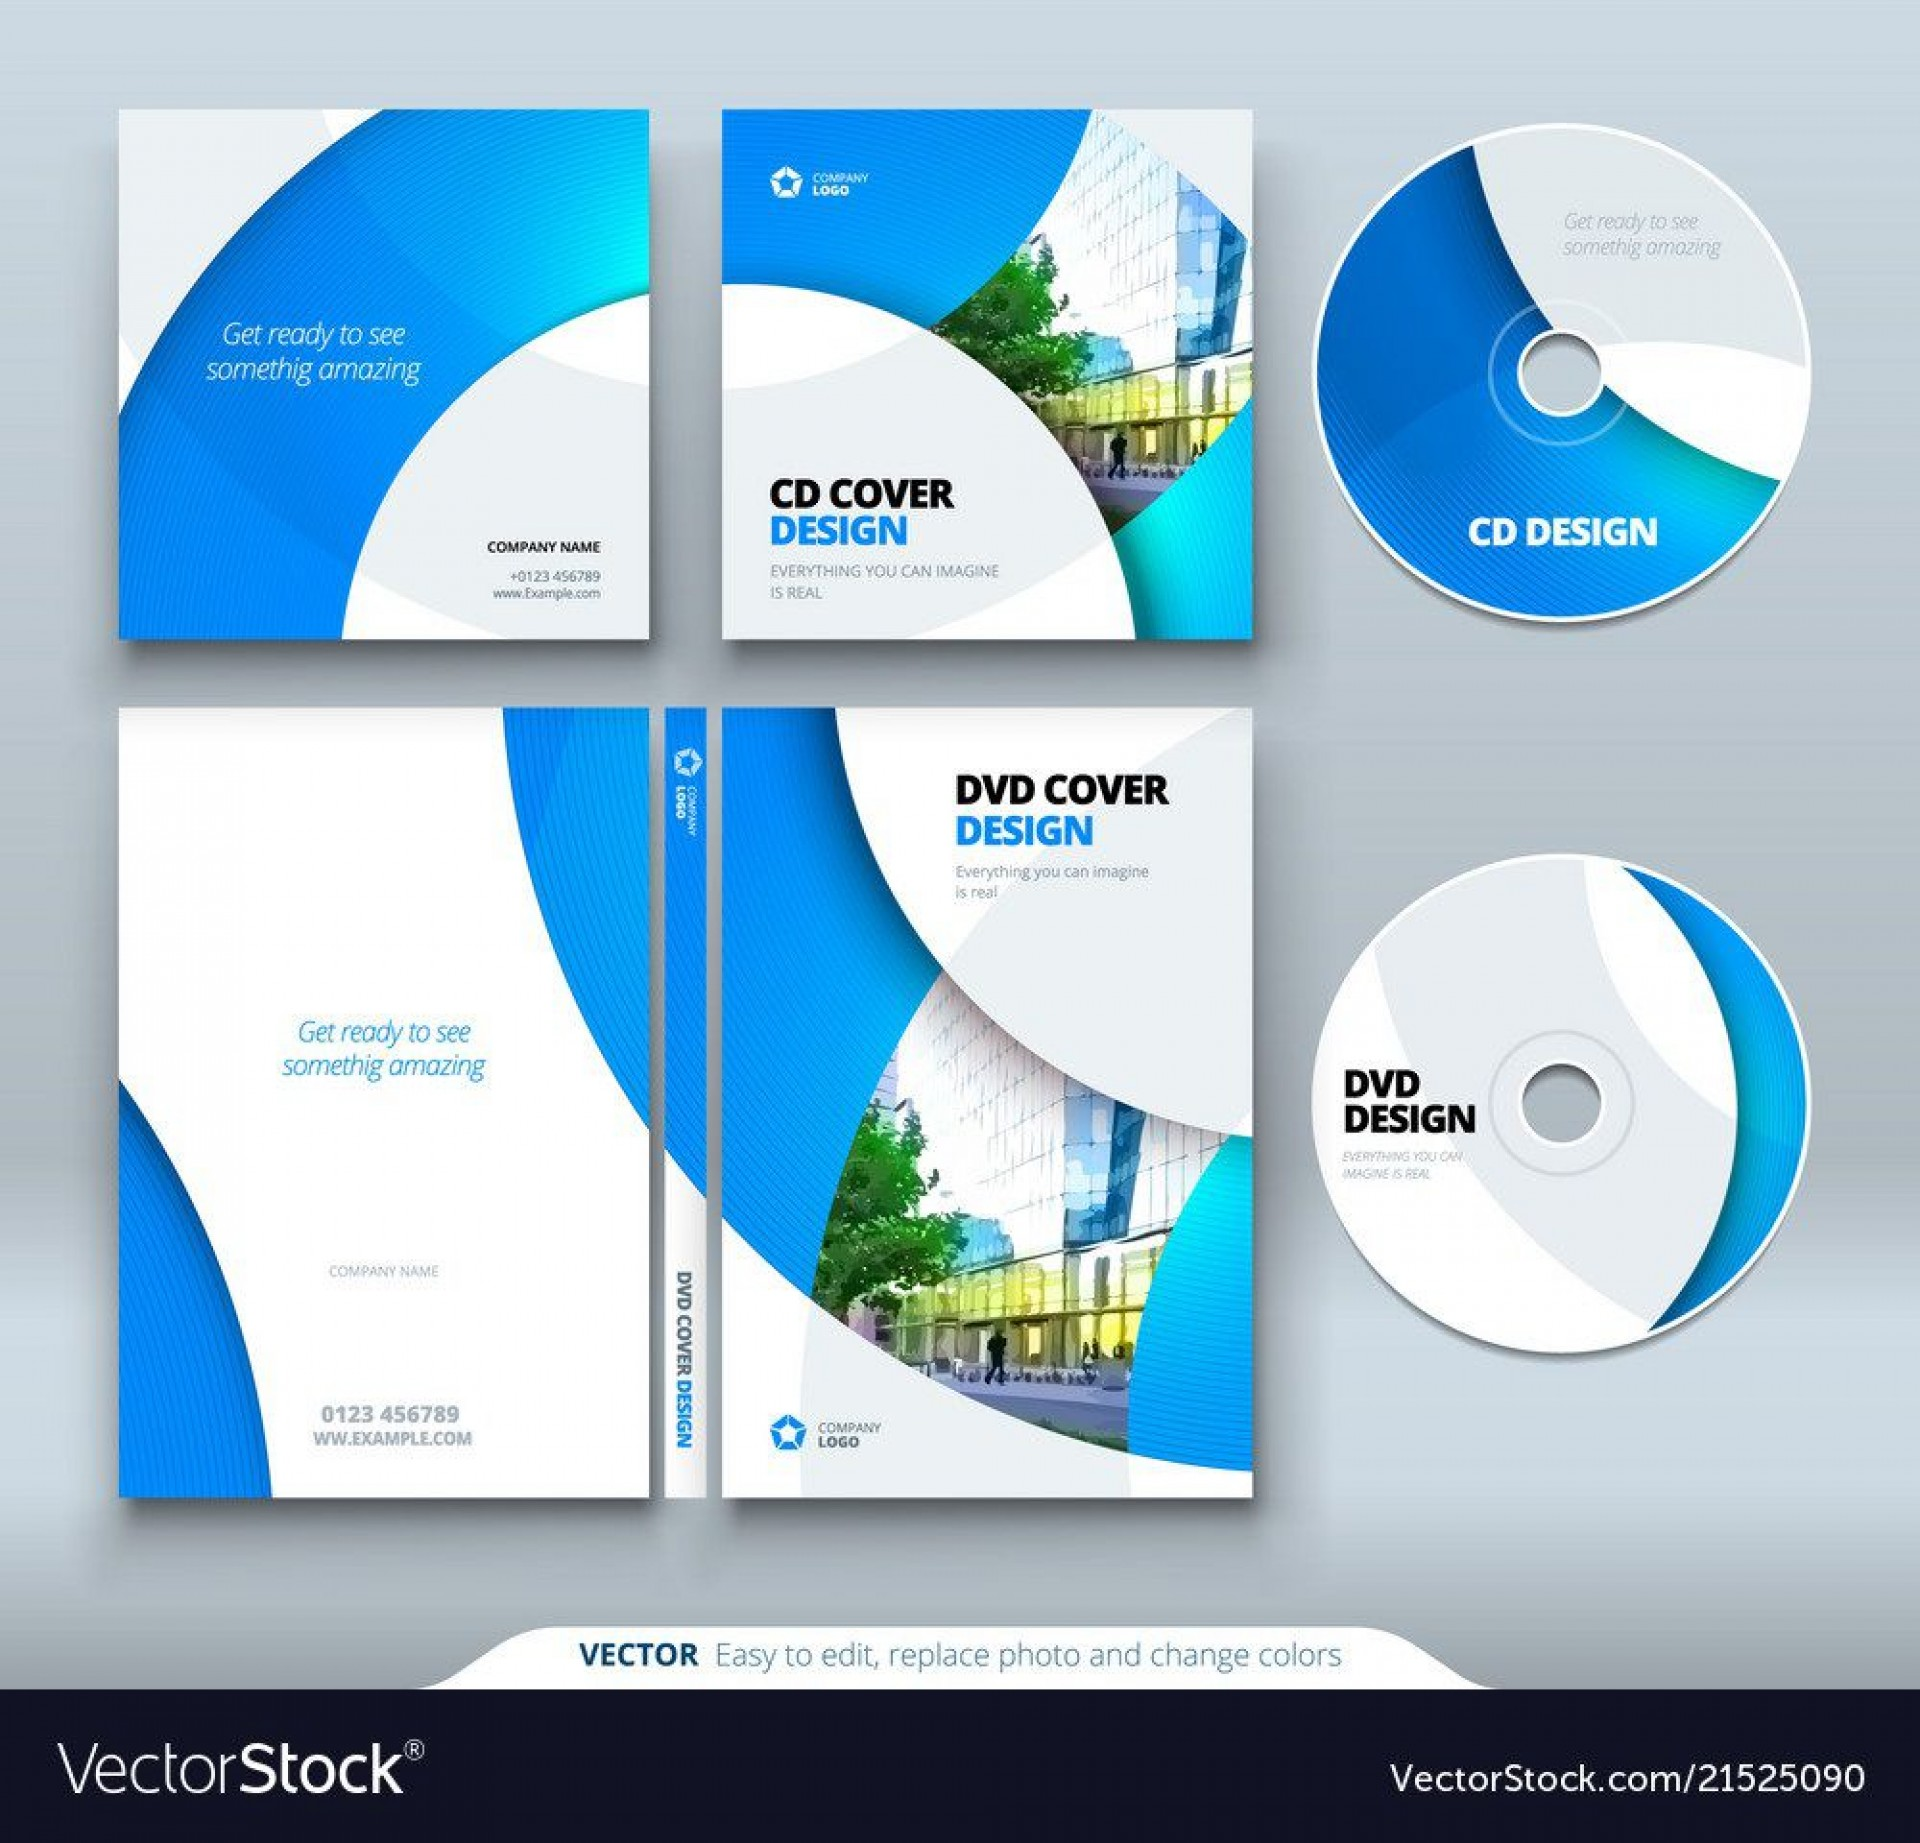 008 Unforgettable Cd Cover Design Template High Definition  Free Vector Illustration Word Psd Download1920